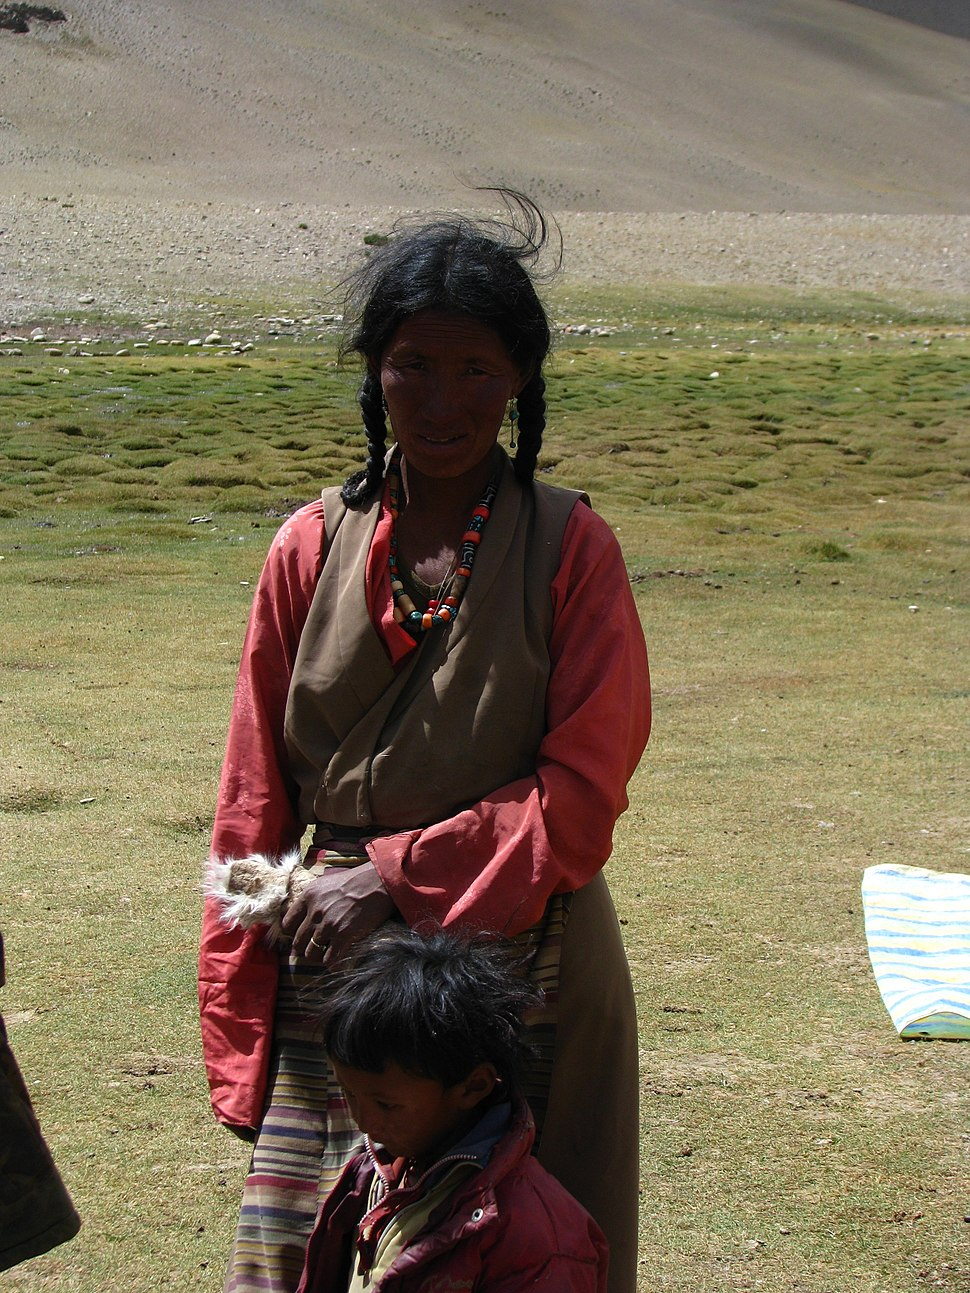 India - Ladakh - Trekking - 063 - shy, but curious nomad woman and her daughter (3896140728)